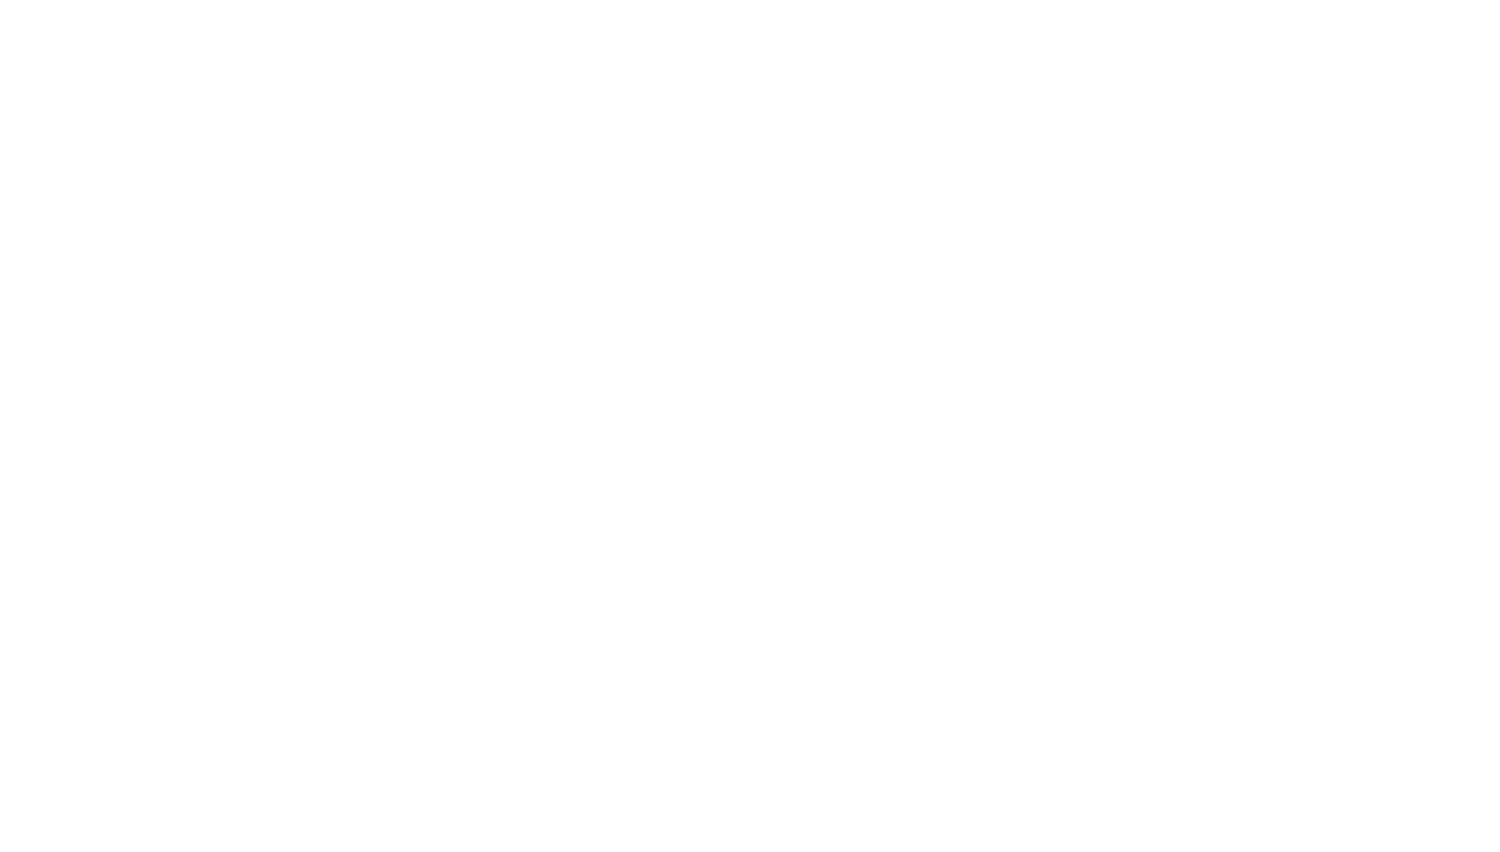 Killingstad Design